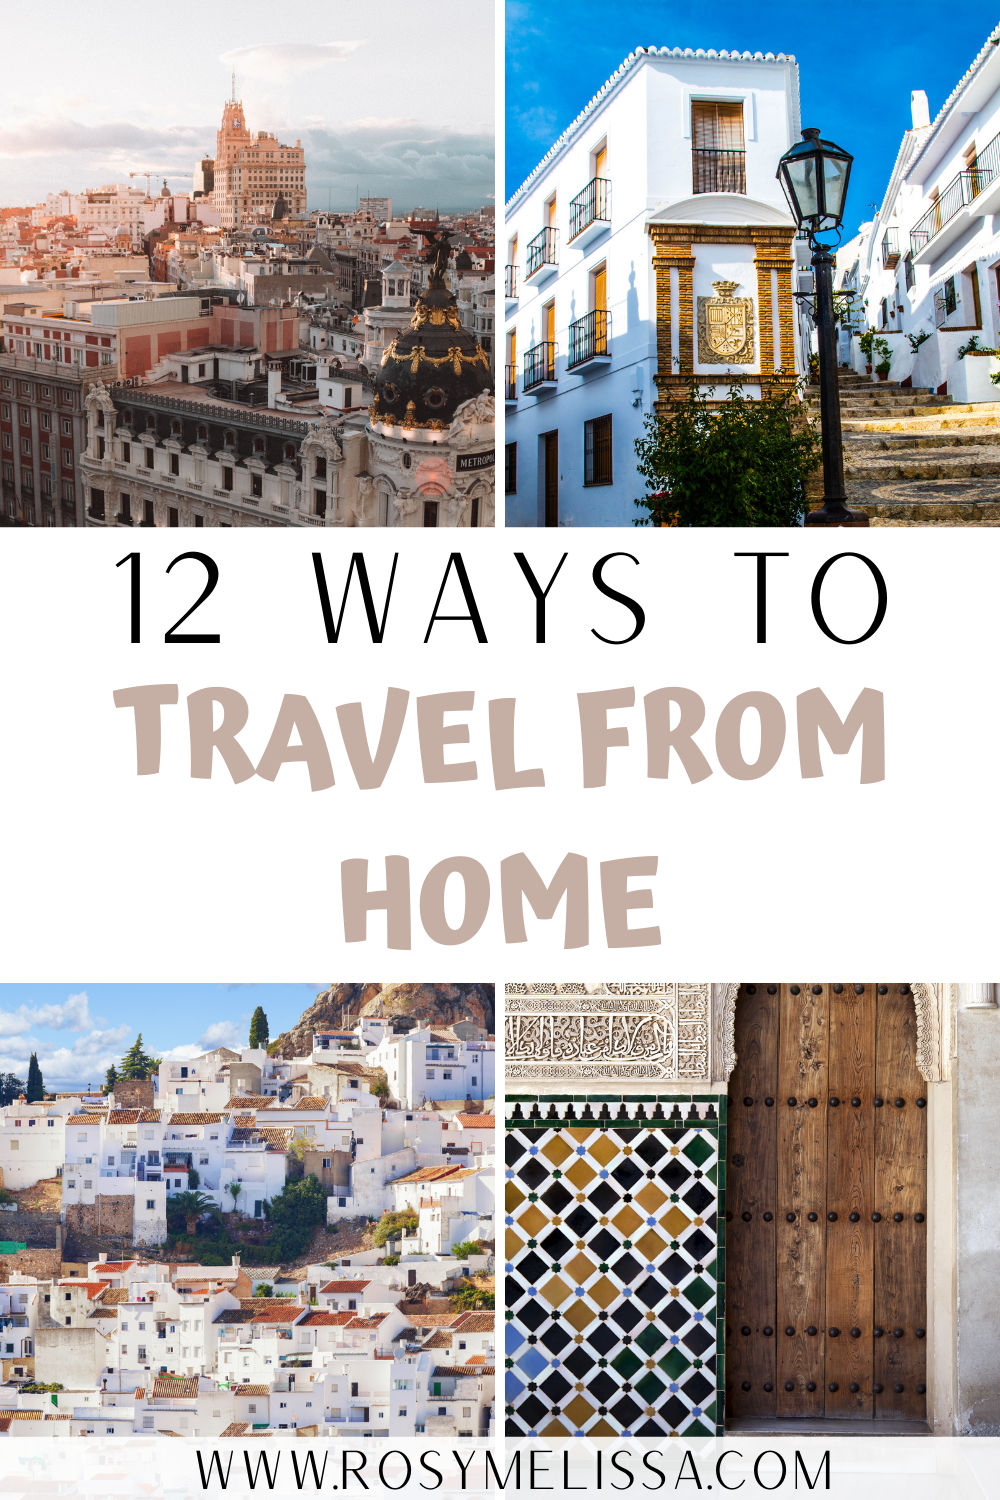 how to travel from home is easy with these 12 ways to satisfy your travel cravings from home